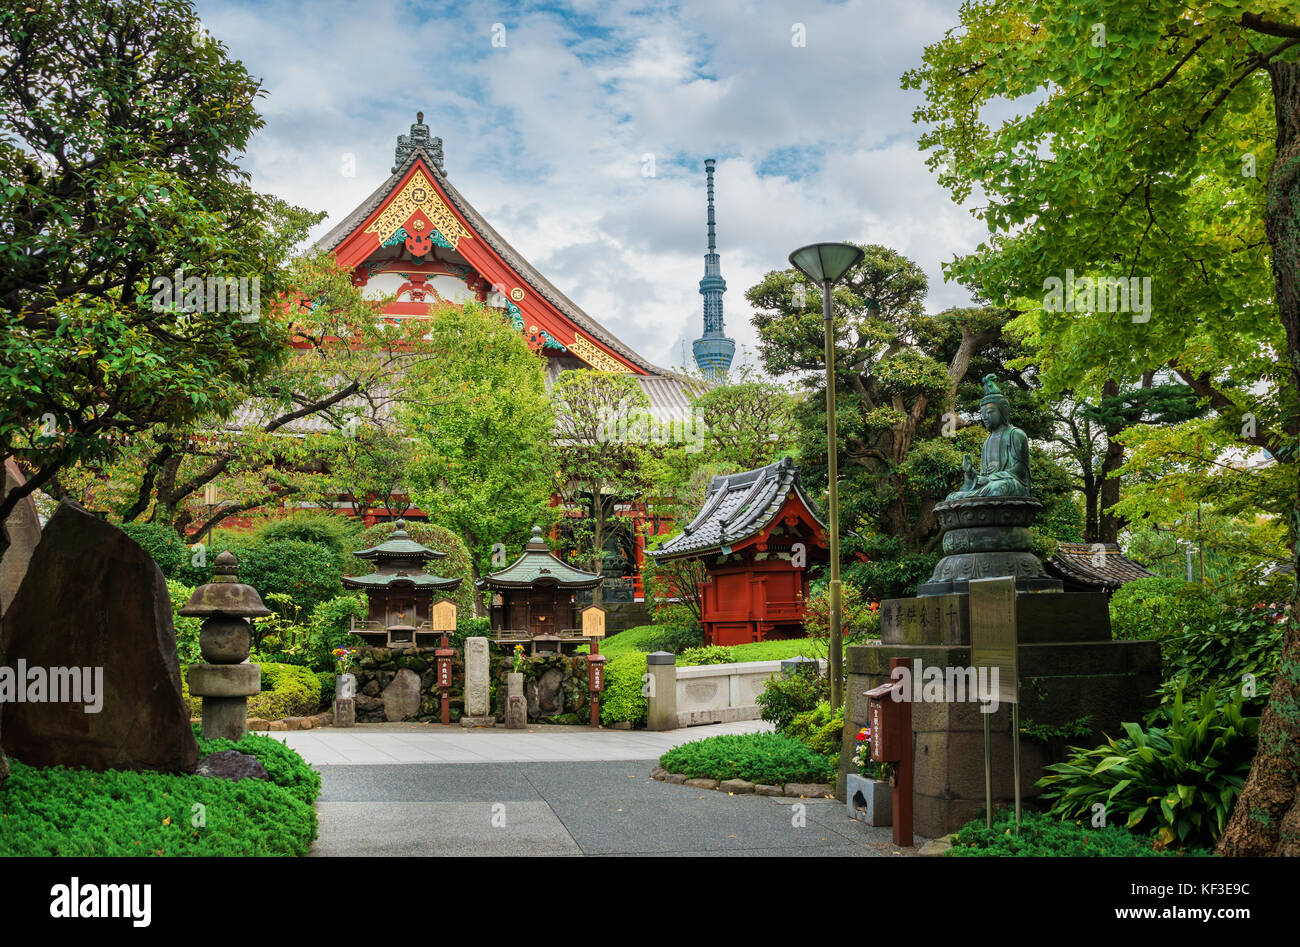 Tradition and Modernity in Japan. View of Asakusa old Buddhist Temple, shrines with the modern Skytree Tower in - Stock Image